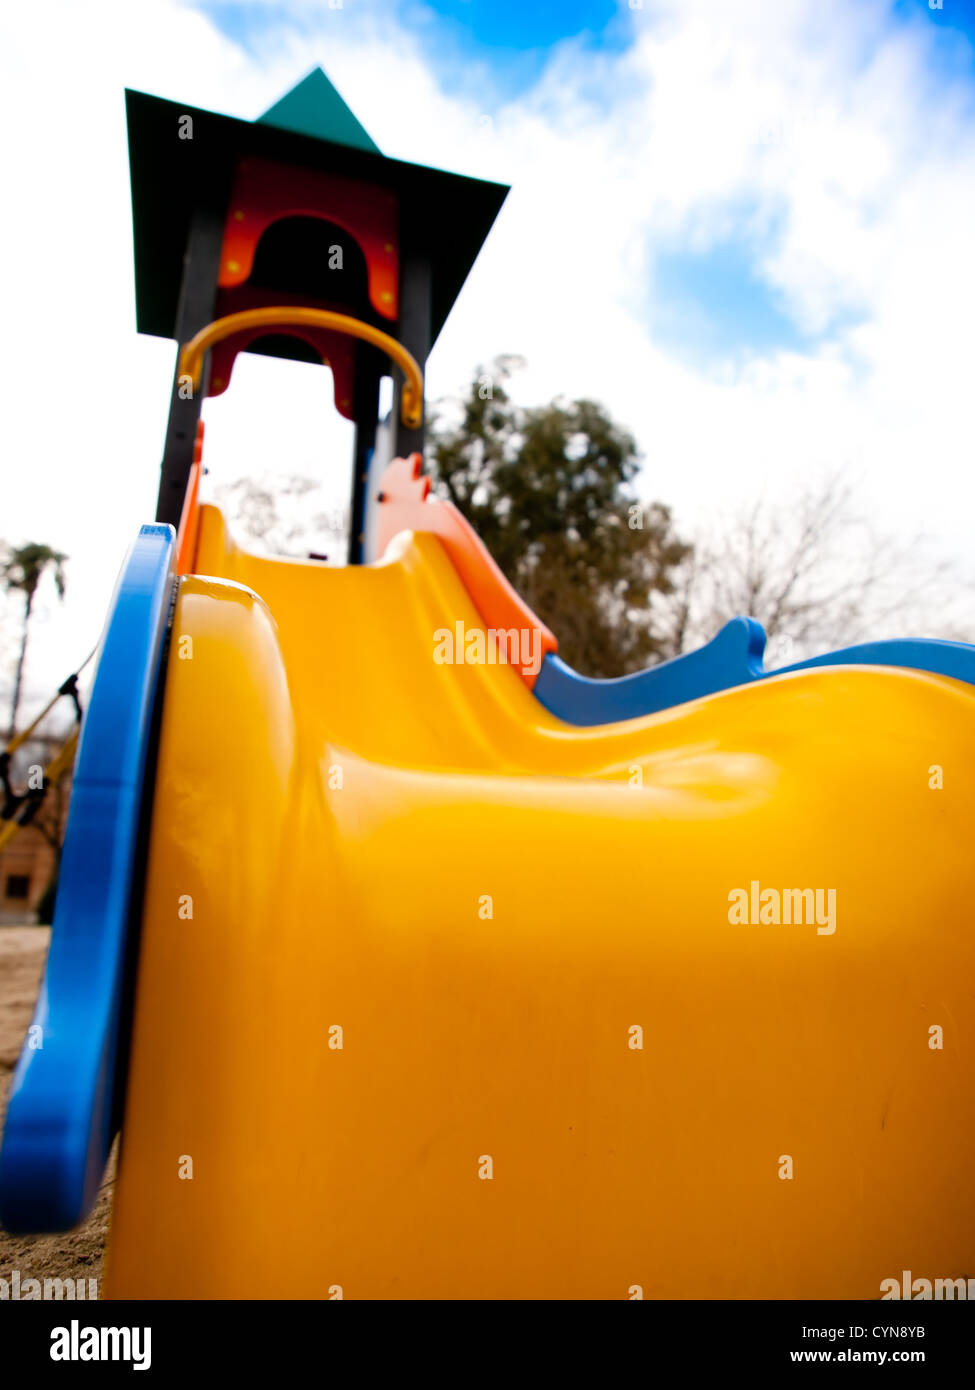 A slide in a park without people - Stock Image